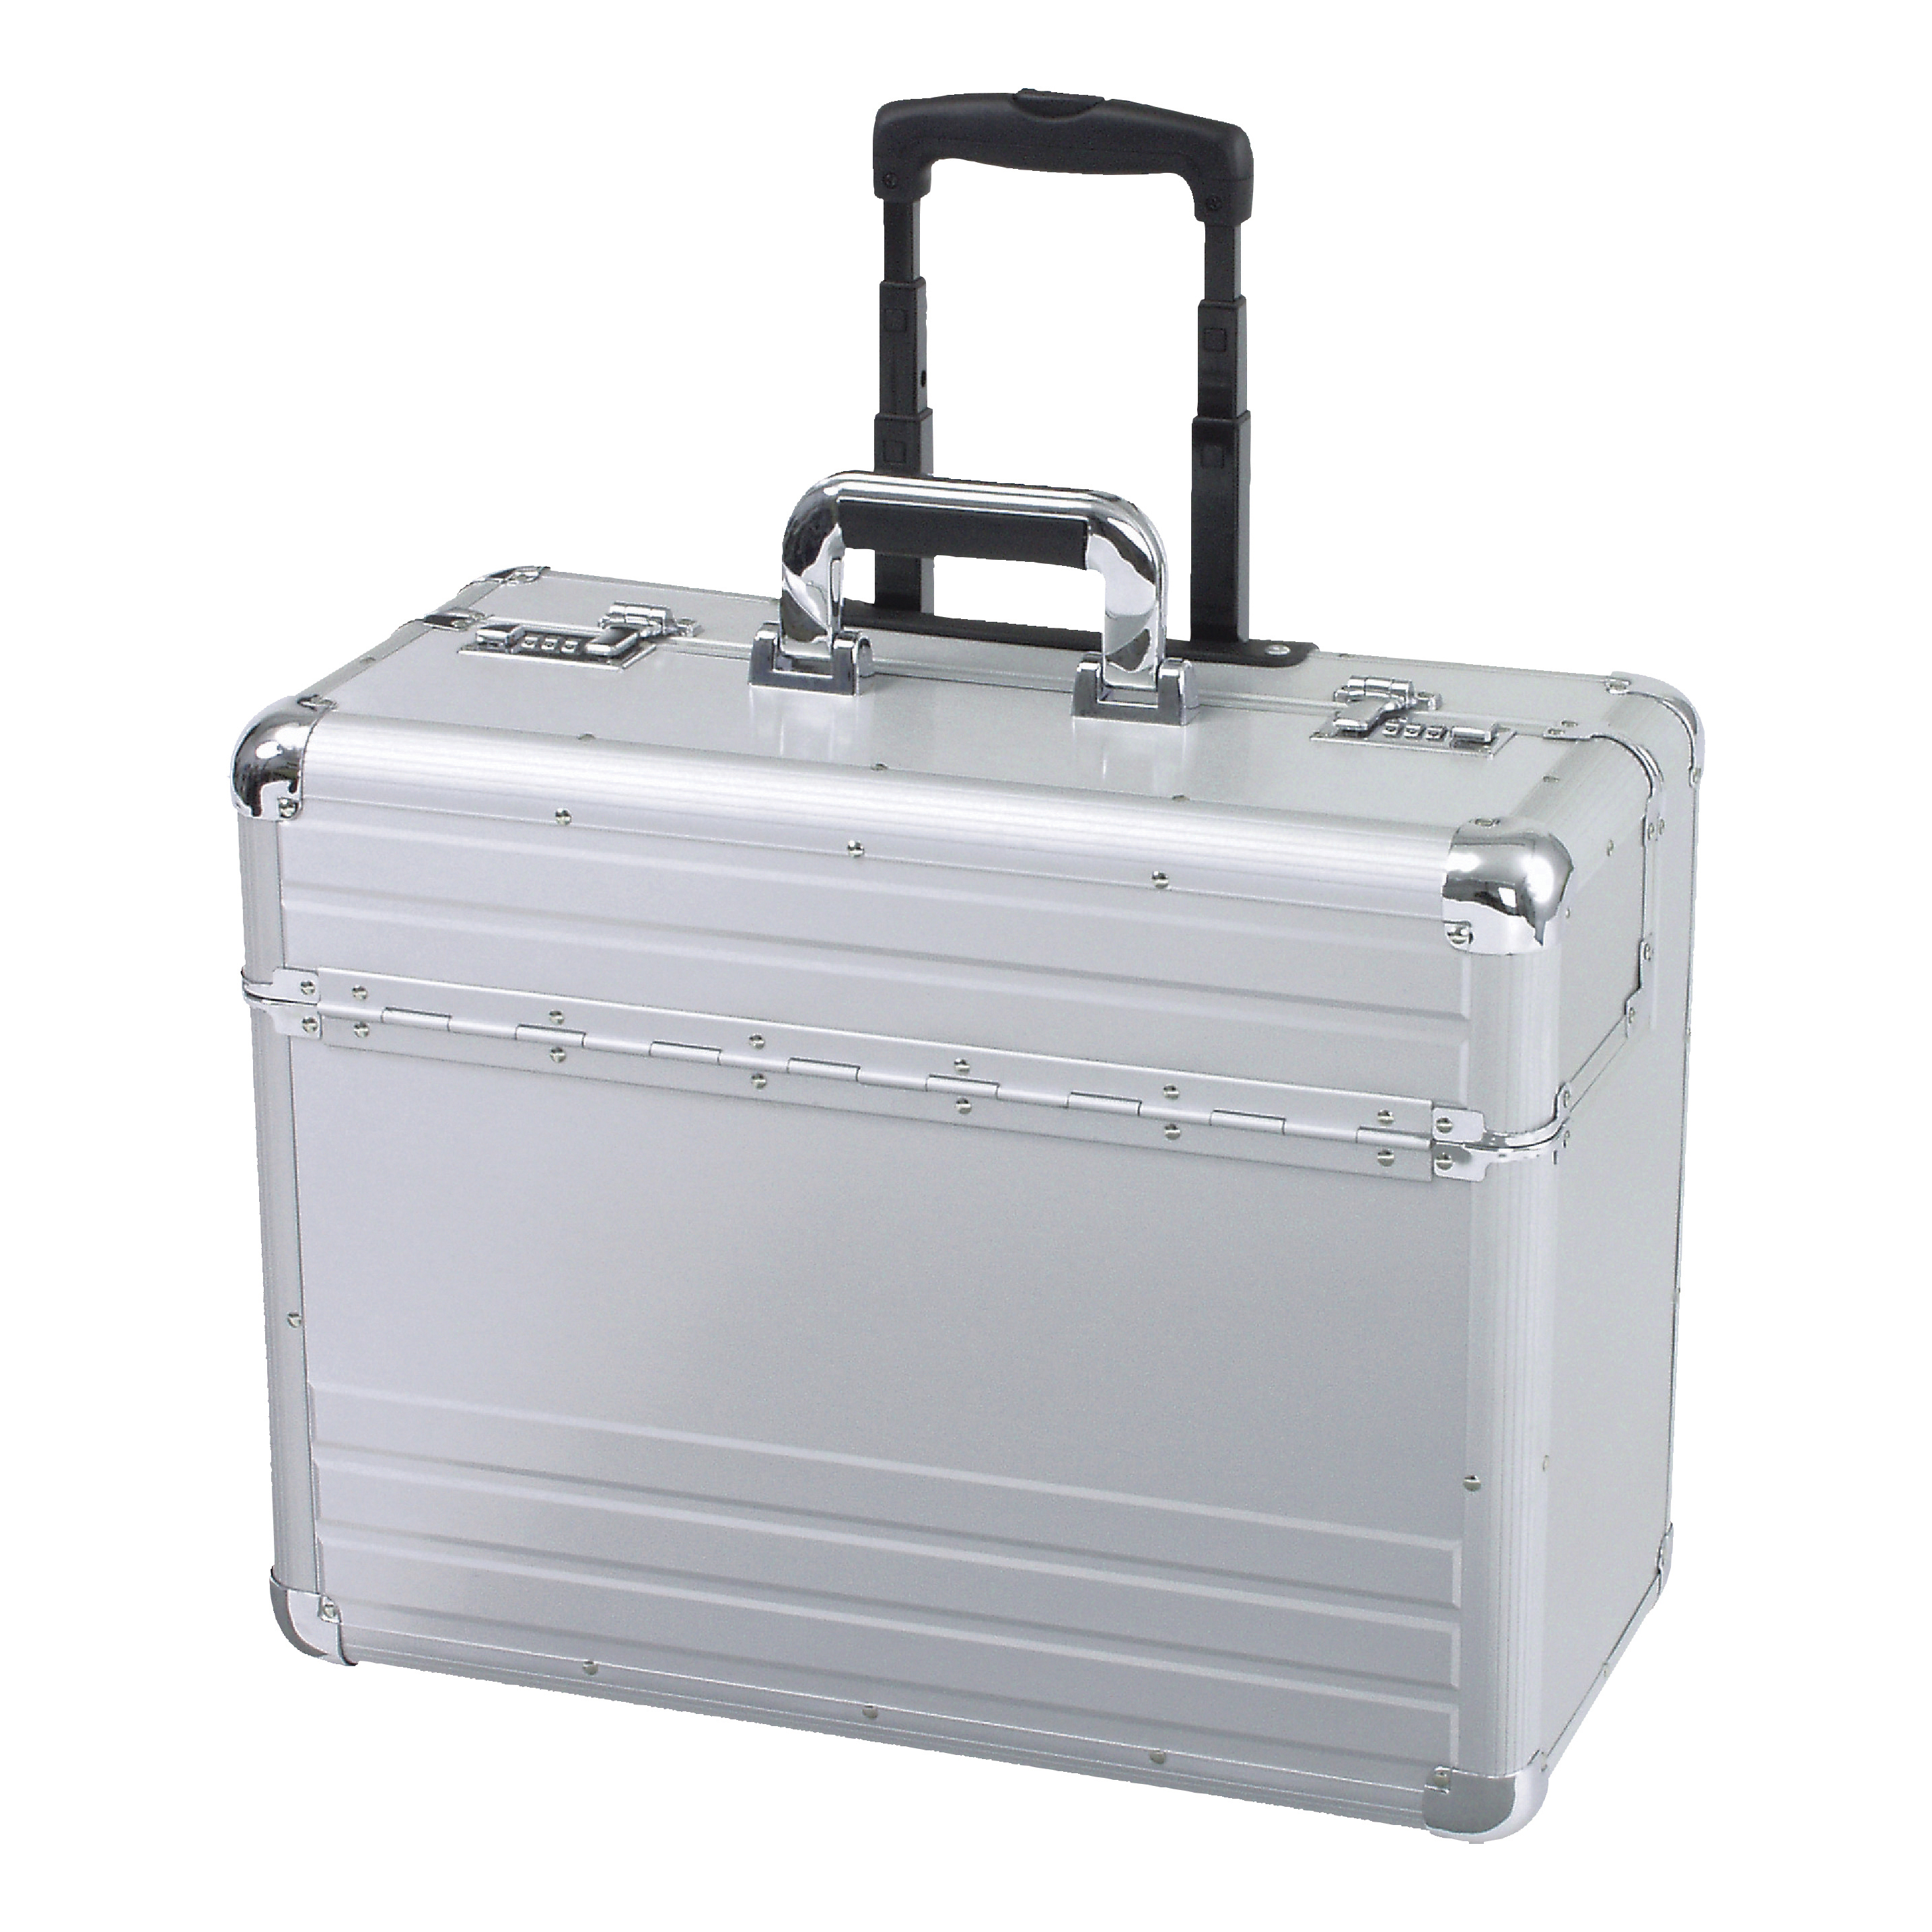 Bags Alumaxx Omega Trolley Pilot Case 2 Combination Locks 5.3kg Silver Aluminium Ref 45122